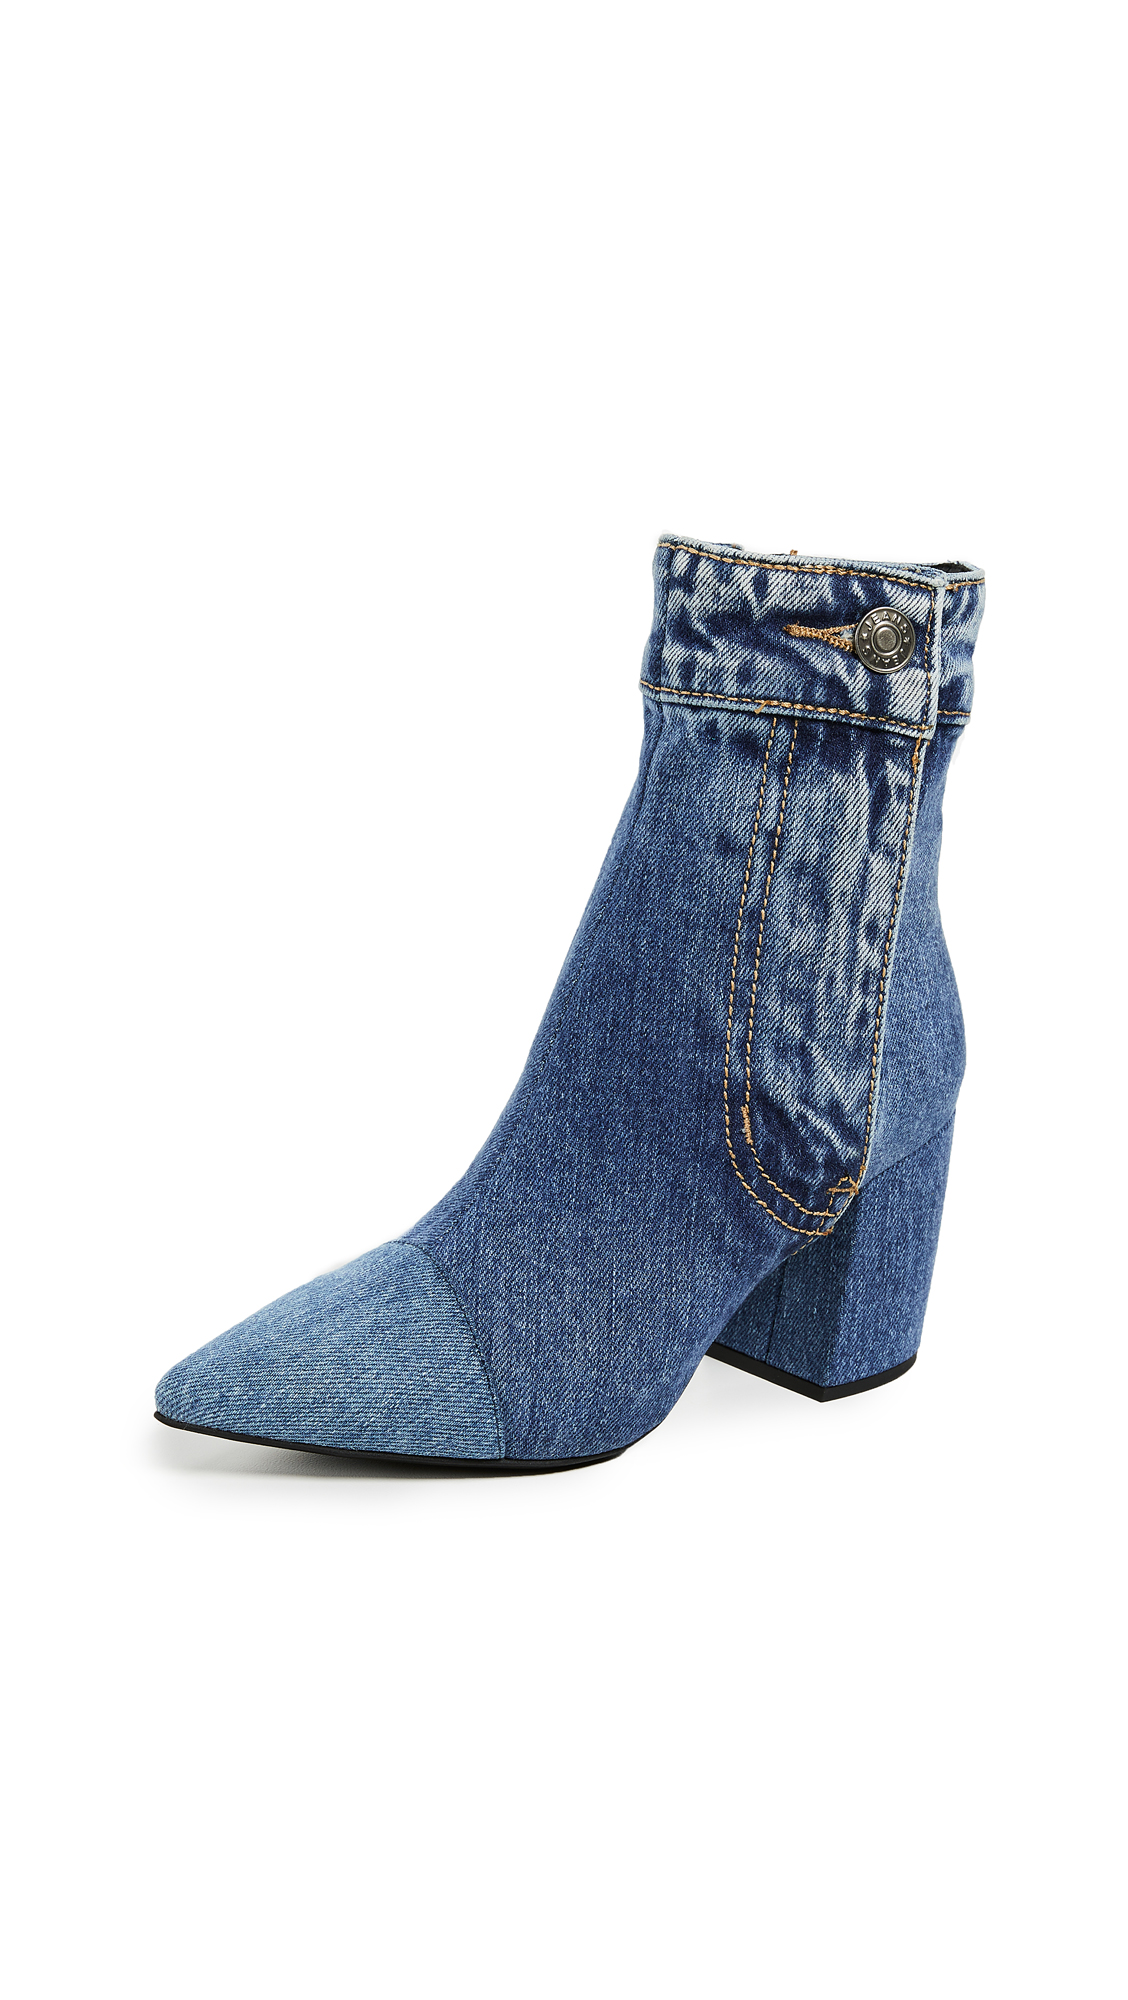 Jeffrey Campbell Finite Jn Block Heel Booties - Blue